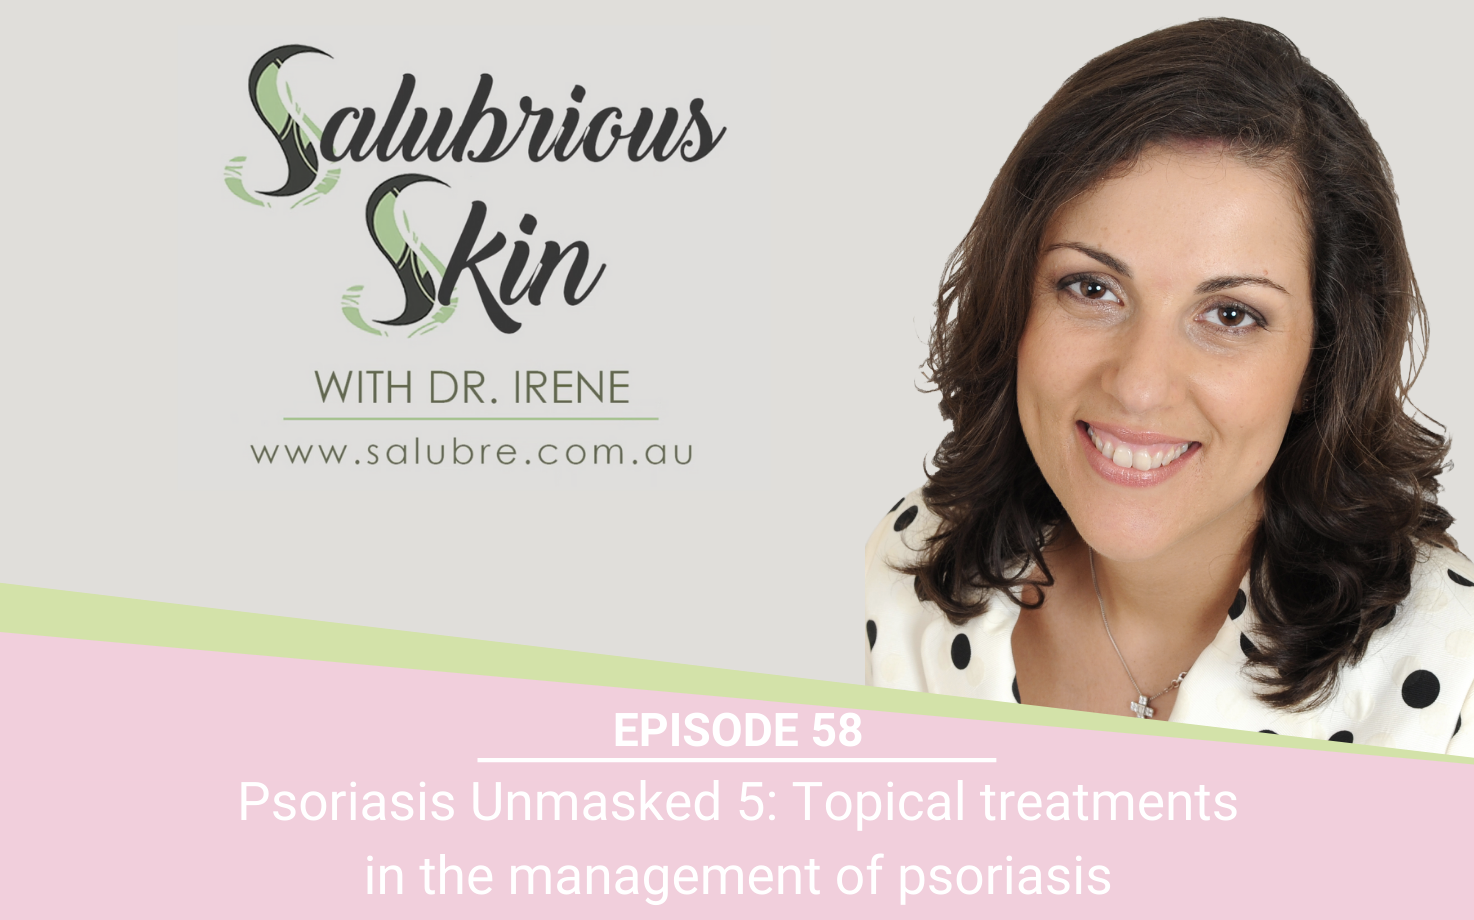 Podcast 58: Psoriasis Unmasked 5: Topical treatments essential in the management of psoriasis